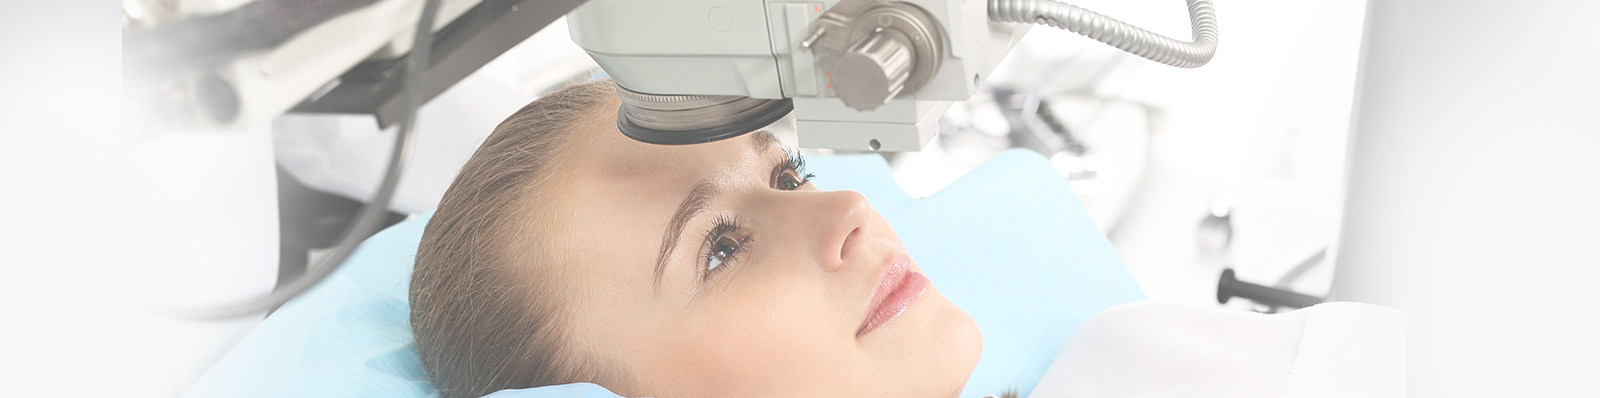 Lasik Eye Surgery At Lenza Eye Center Lenzaeye Com